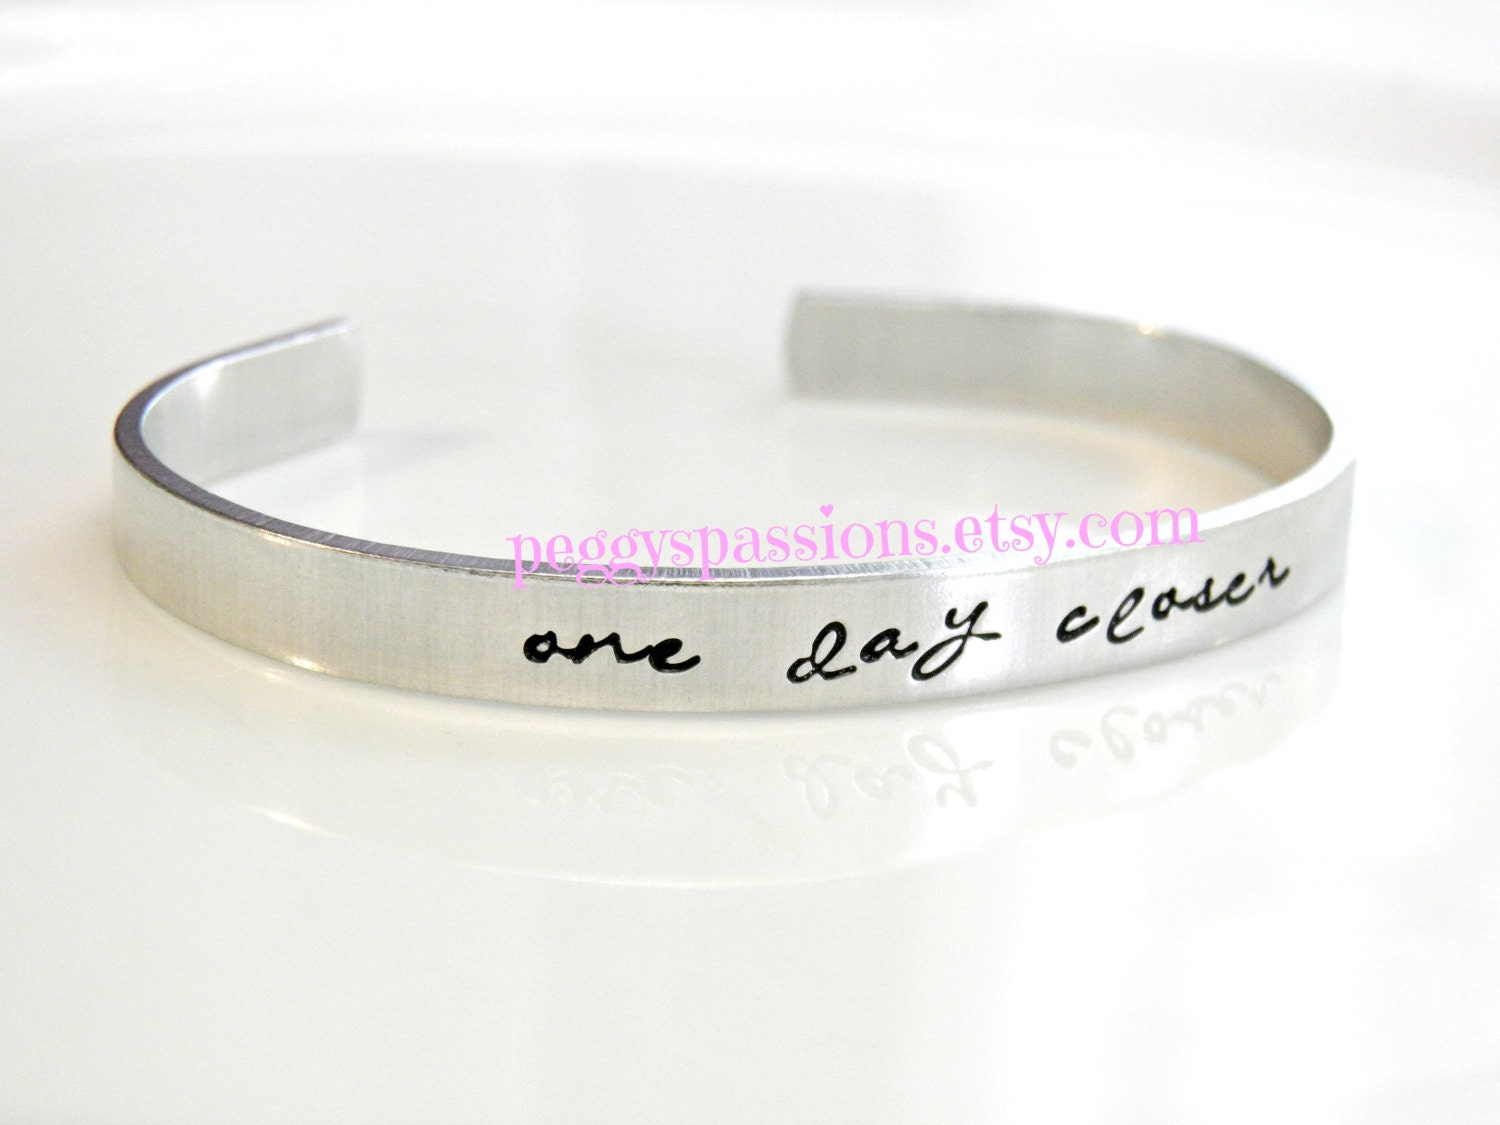 One day closer Hand stamped cuff bracelet Deployed